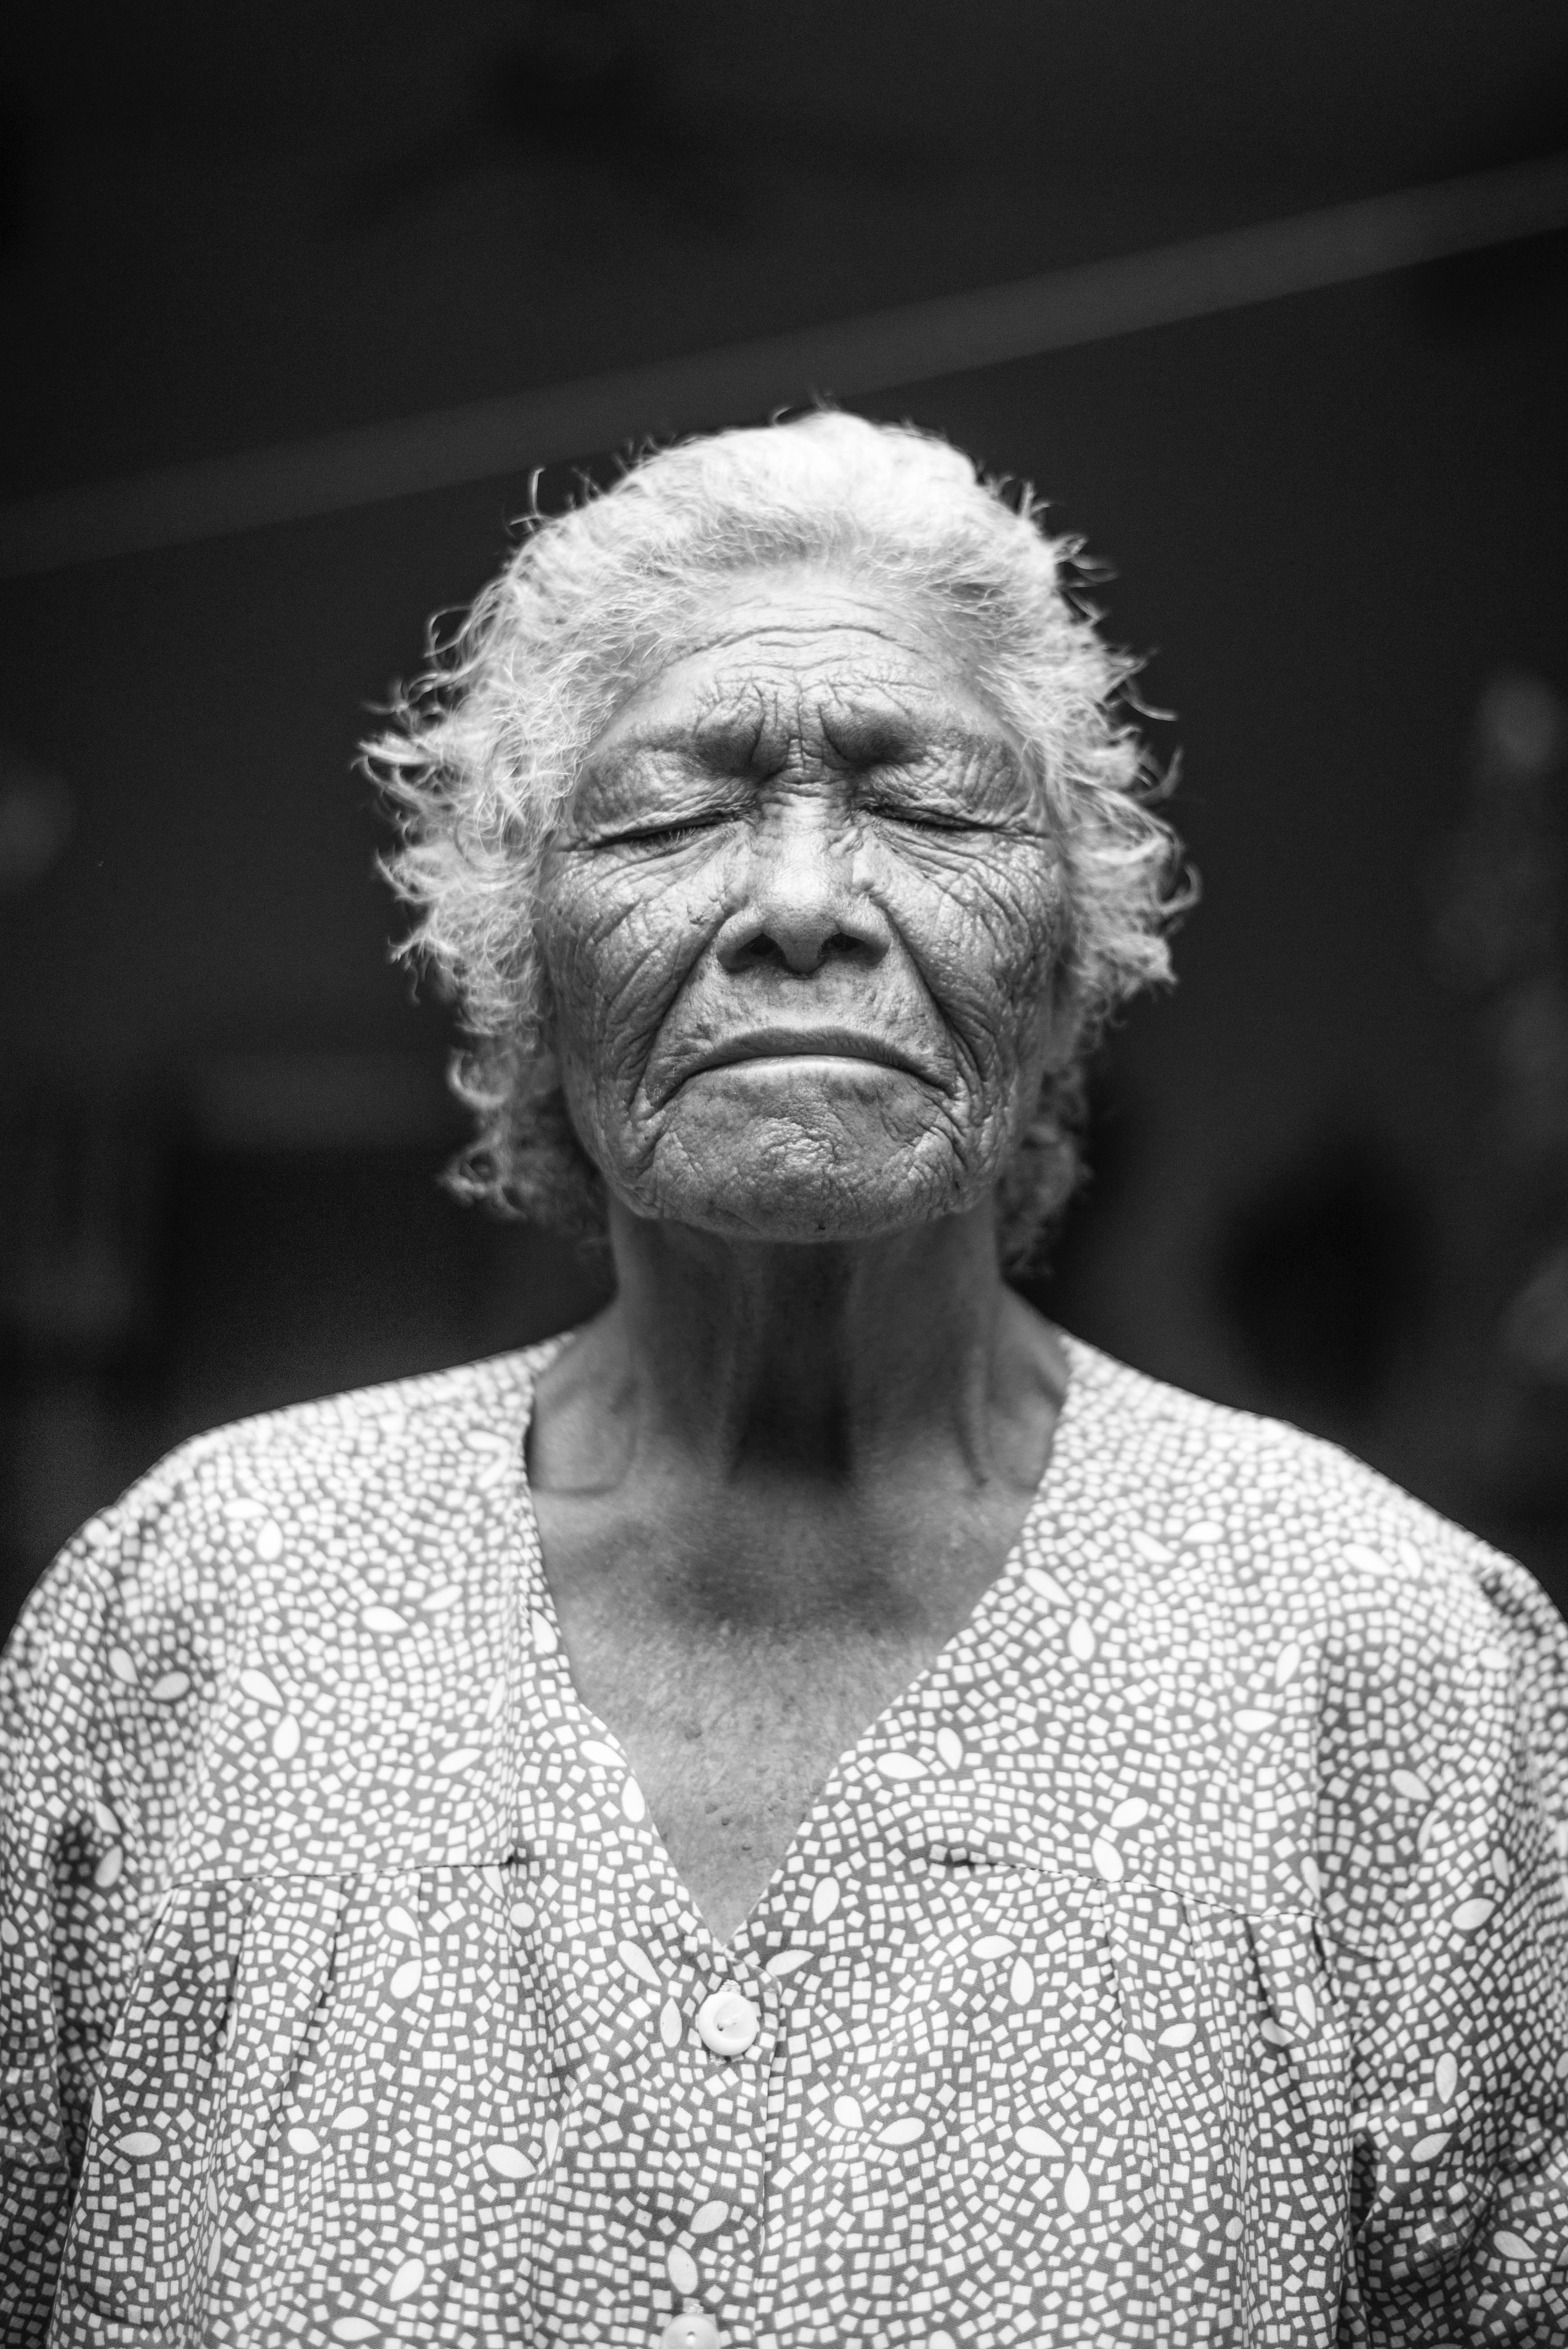 Old grandmother with gray hair and a wrinkled face closing her eyes in black and white.